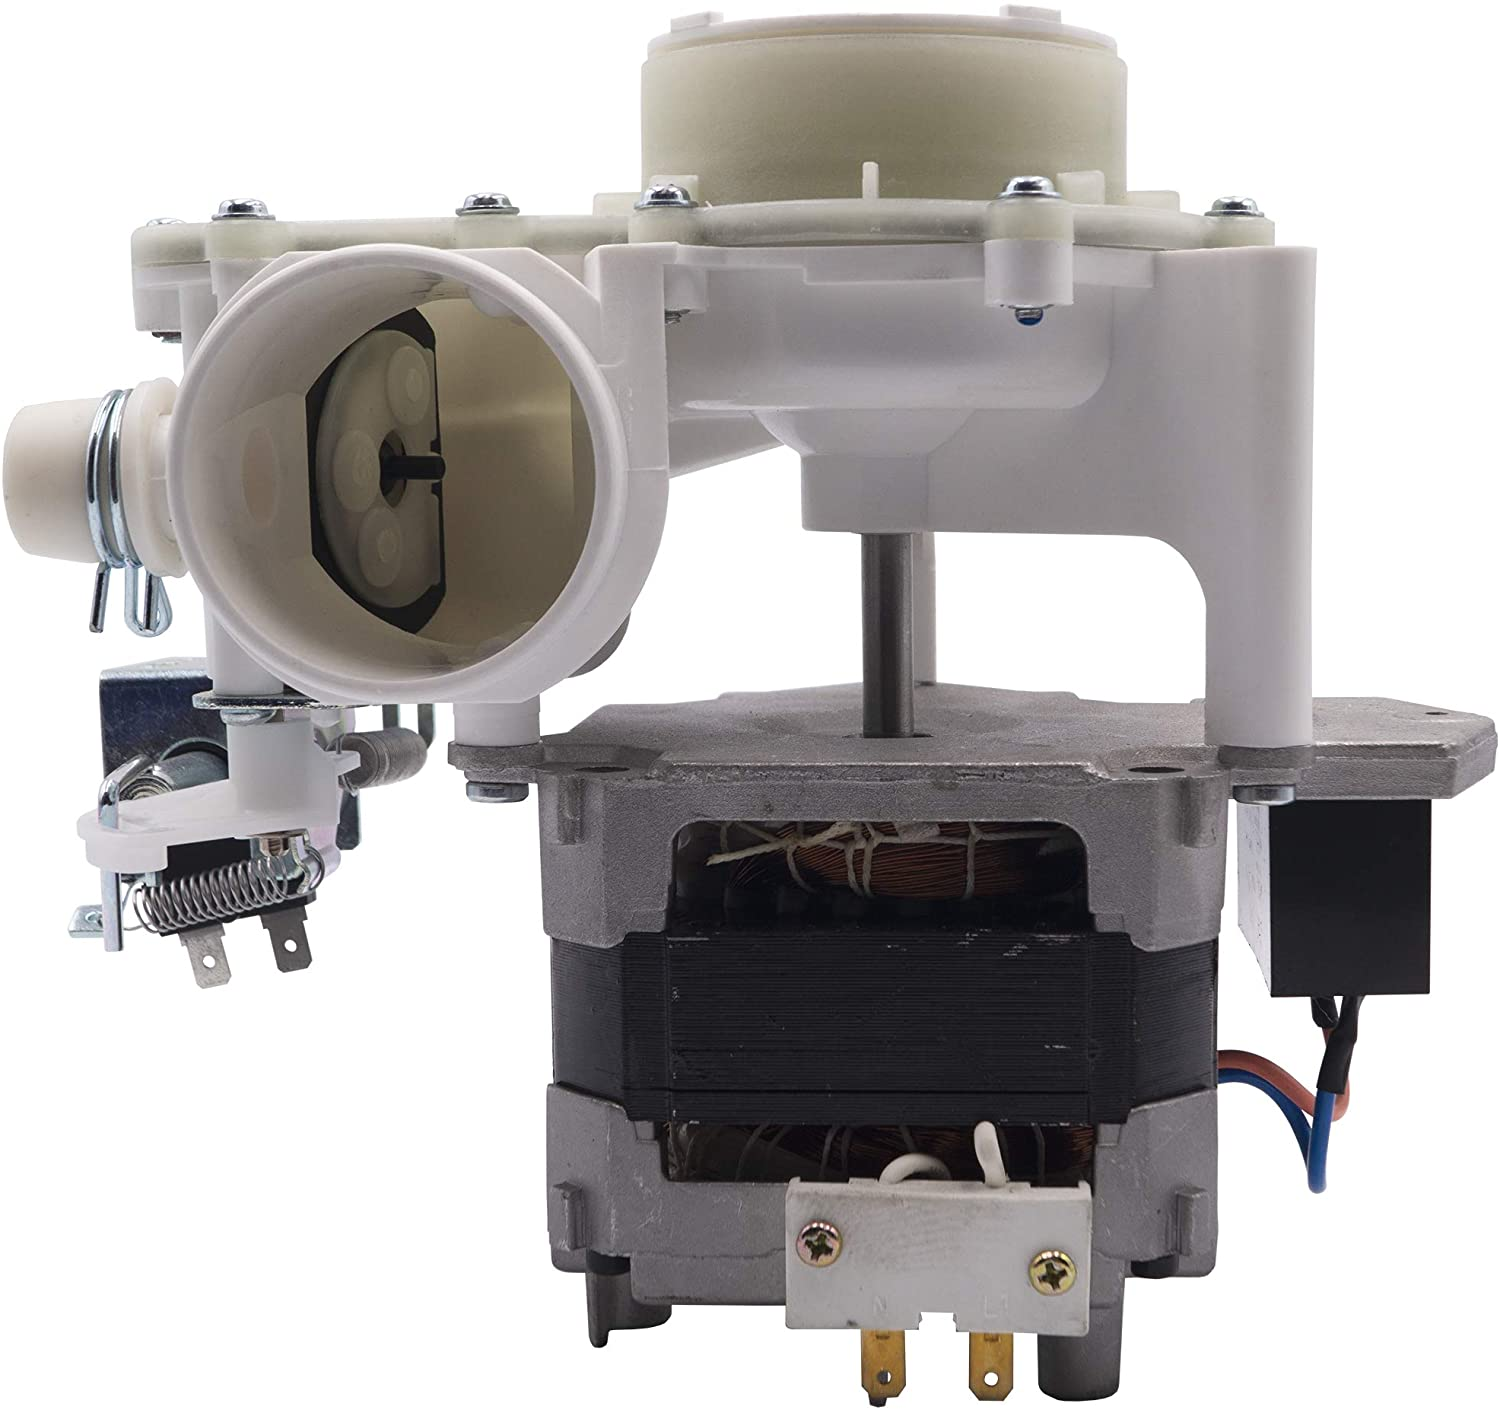 Supplying Demand WD26X10051 Dishwasher Pump and Motor Assembly With Pump And Capacitor Replaces 1811038, WD26X10035